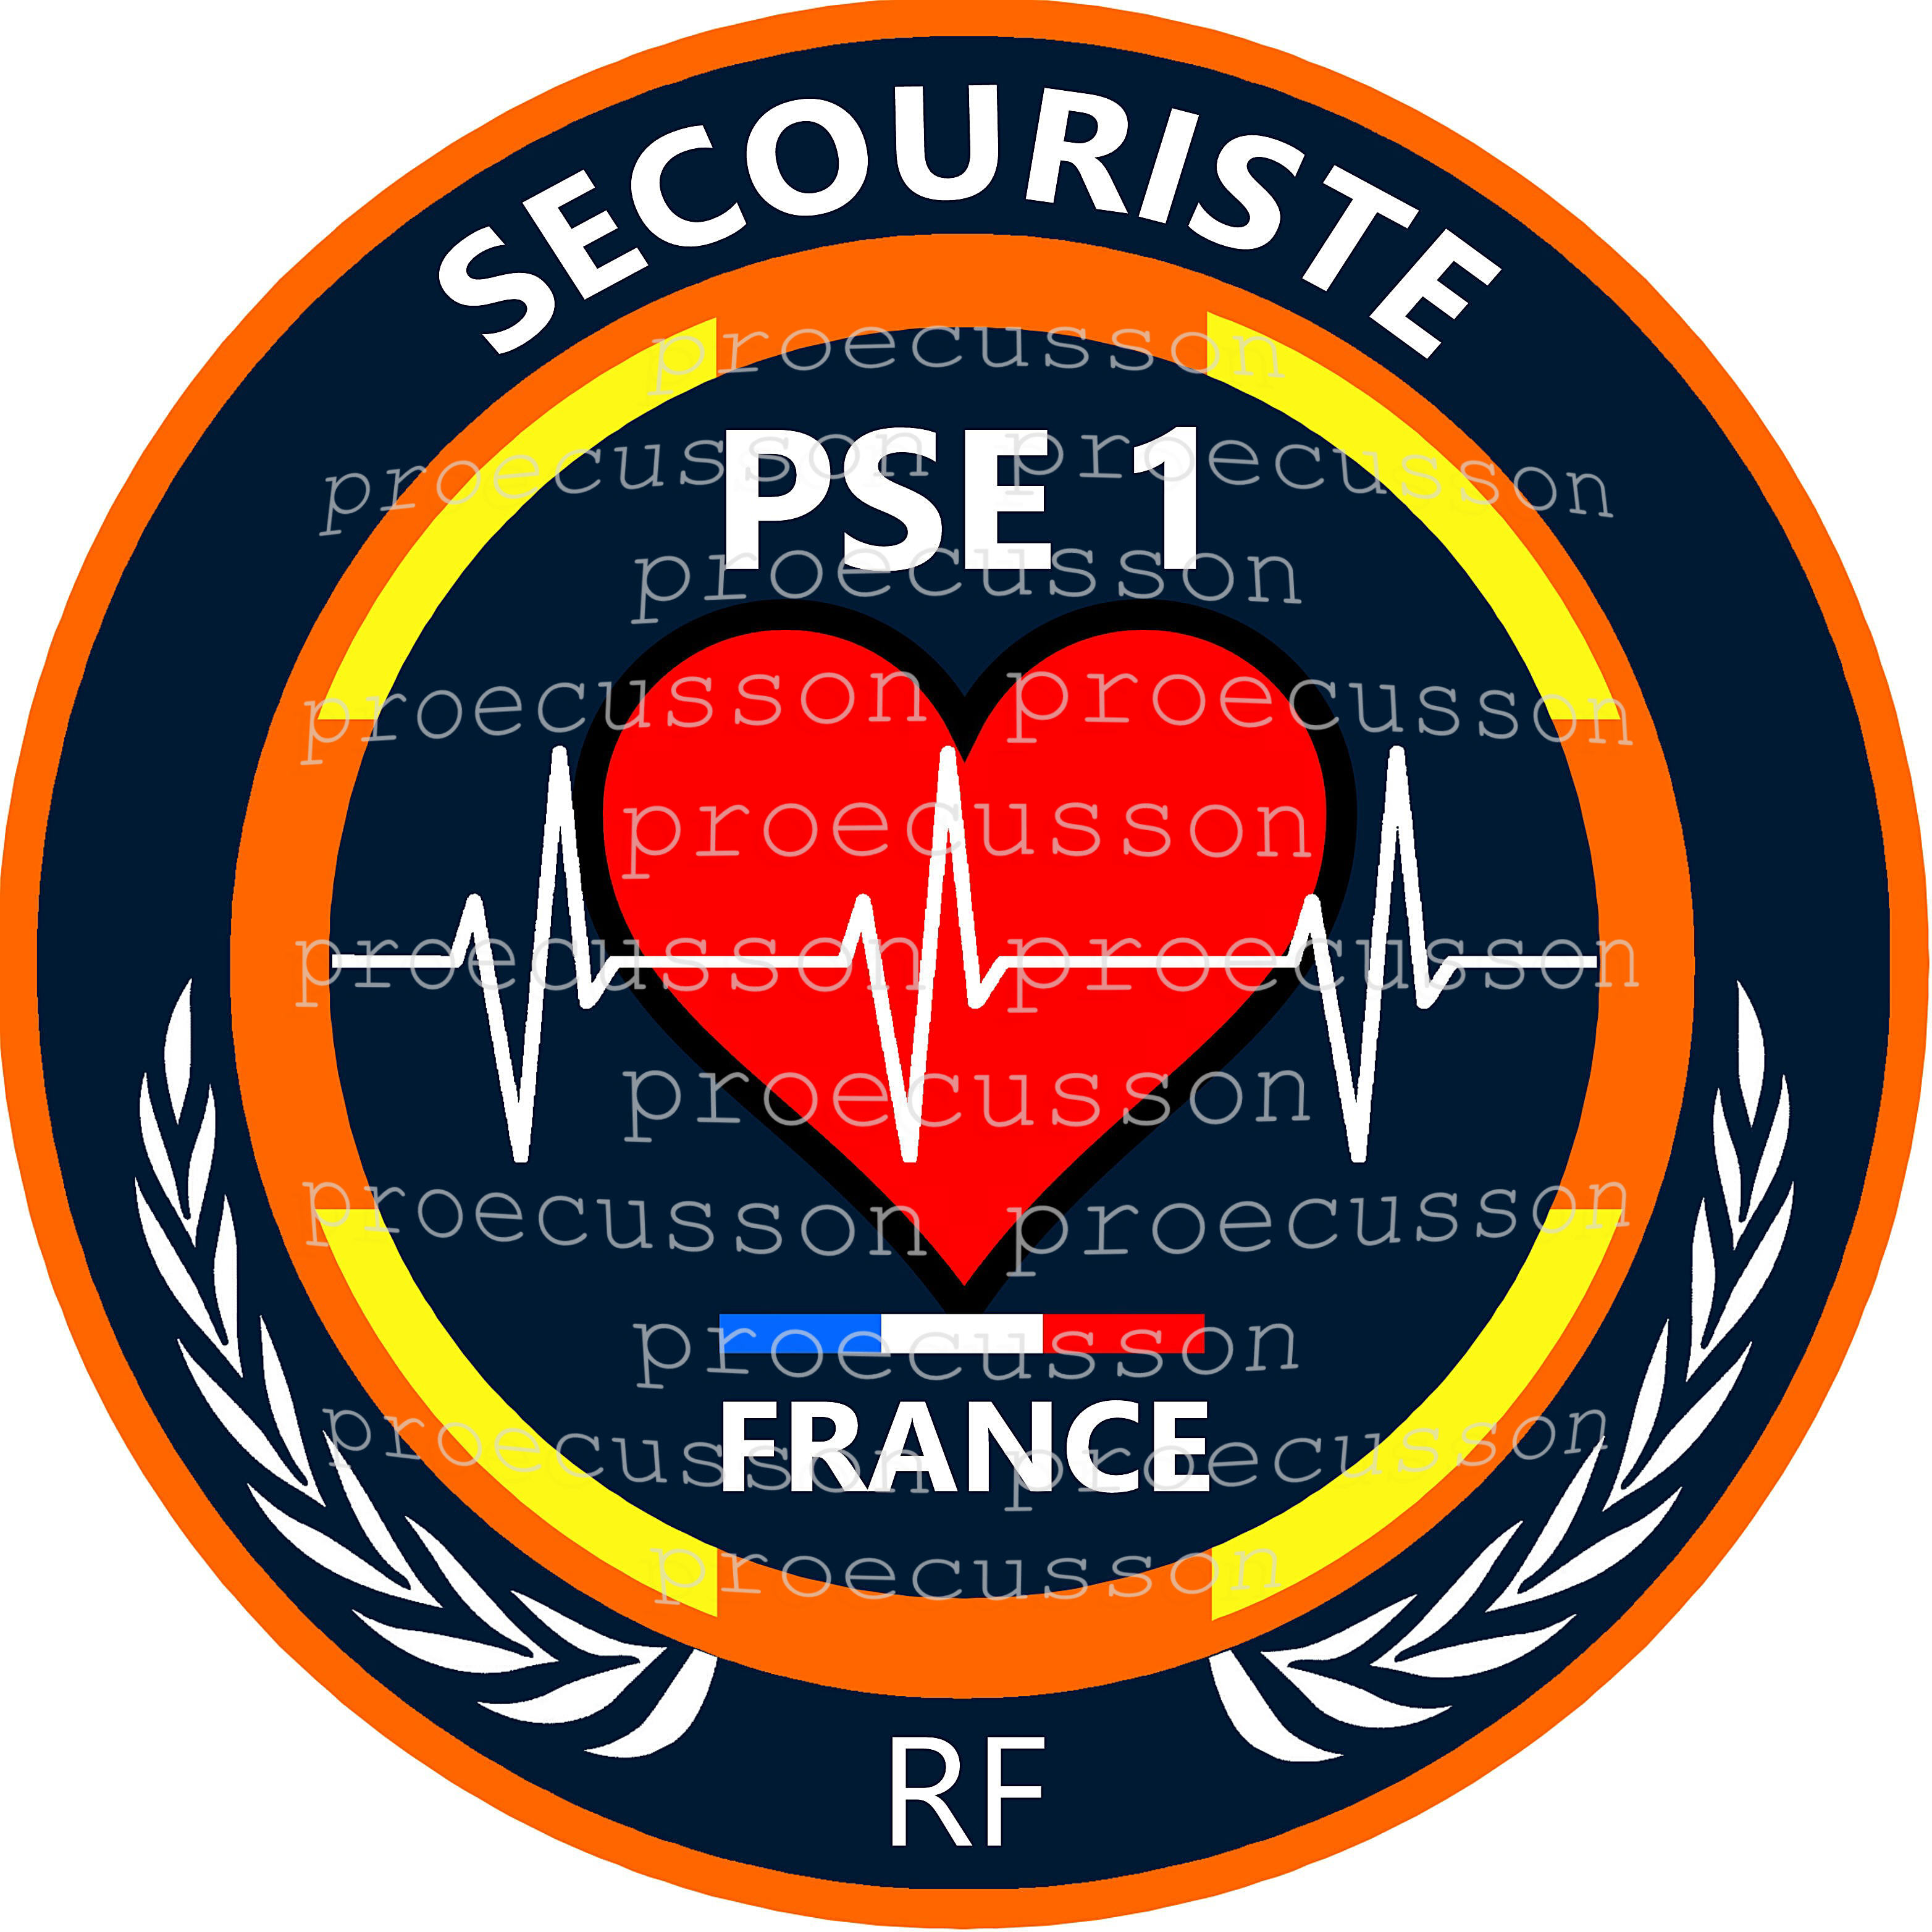 SECOURISTE PSE1